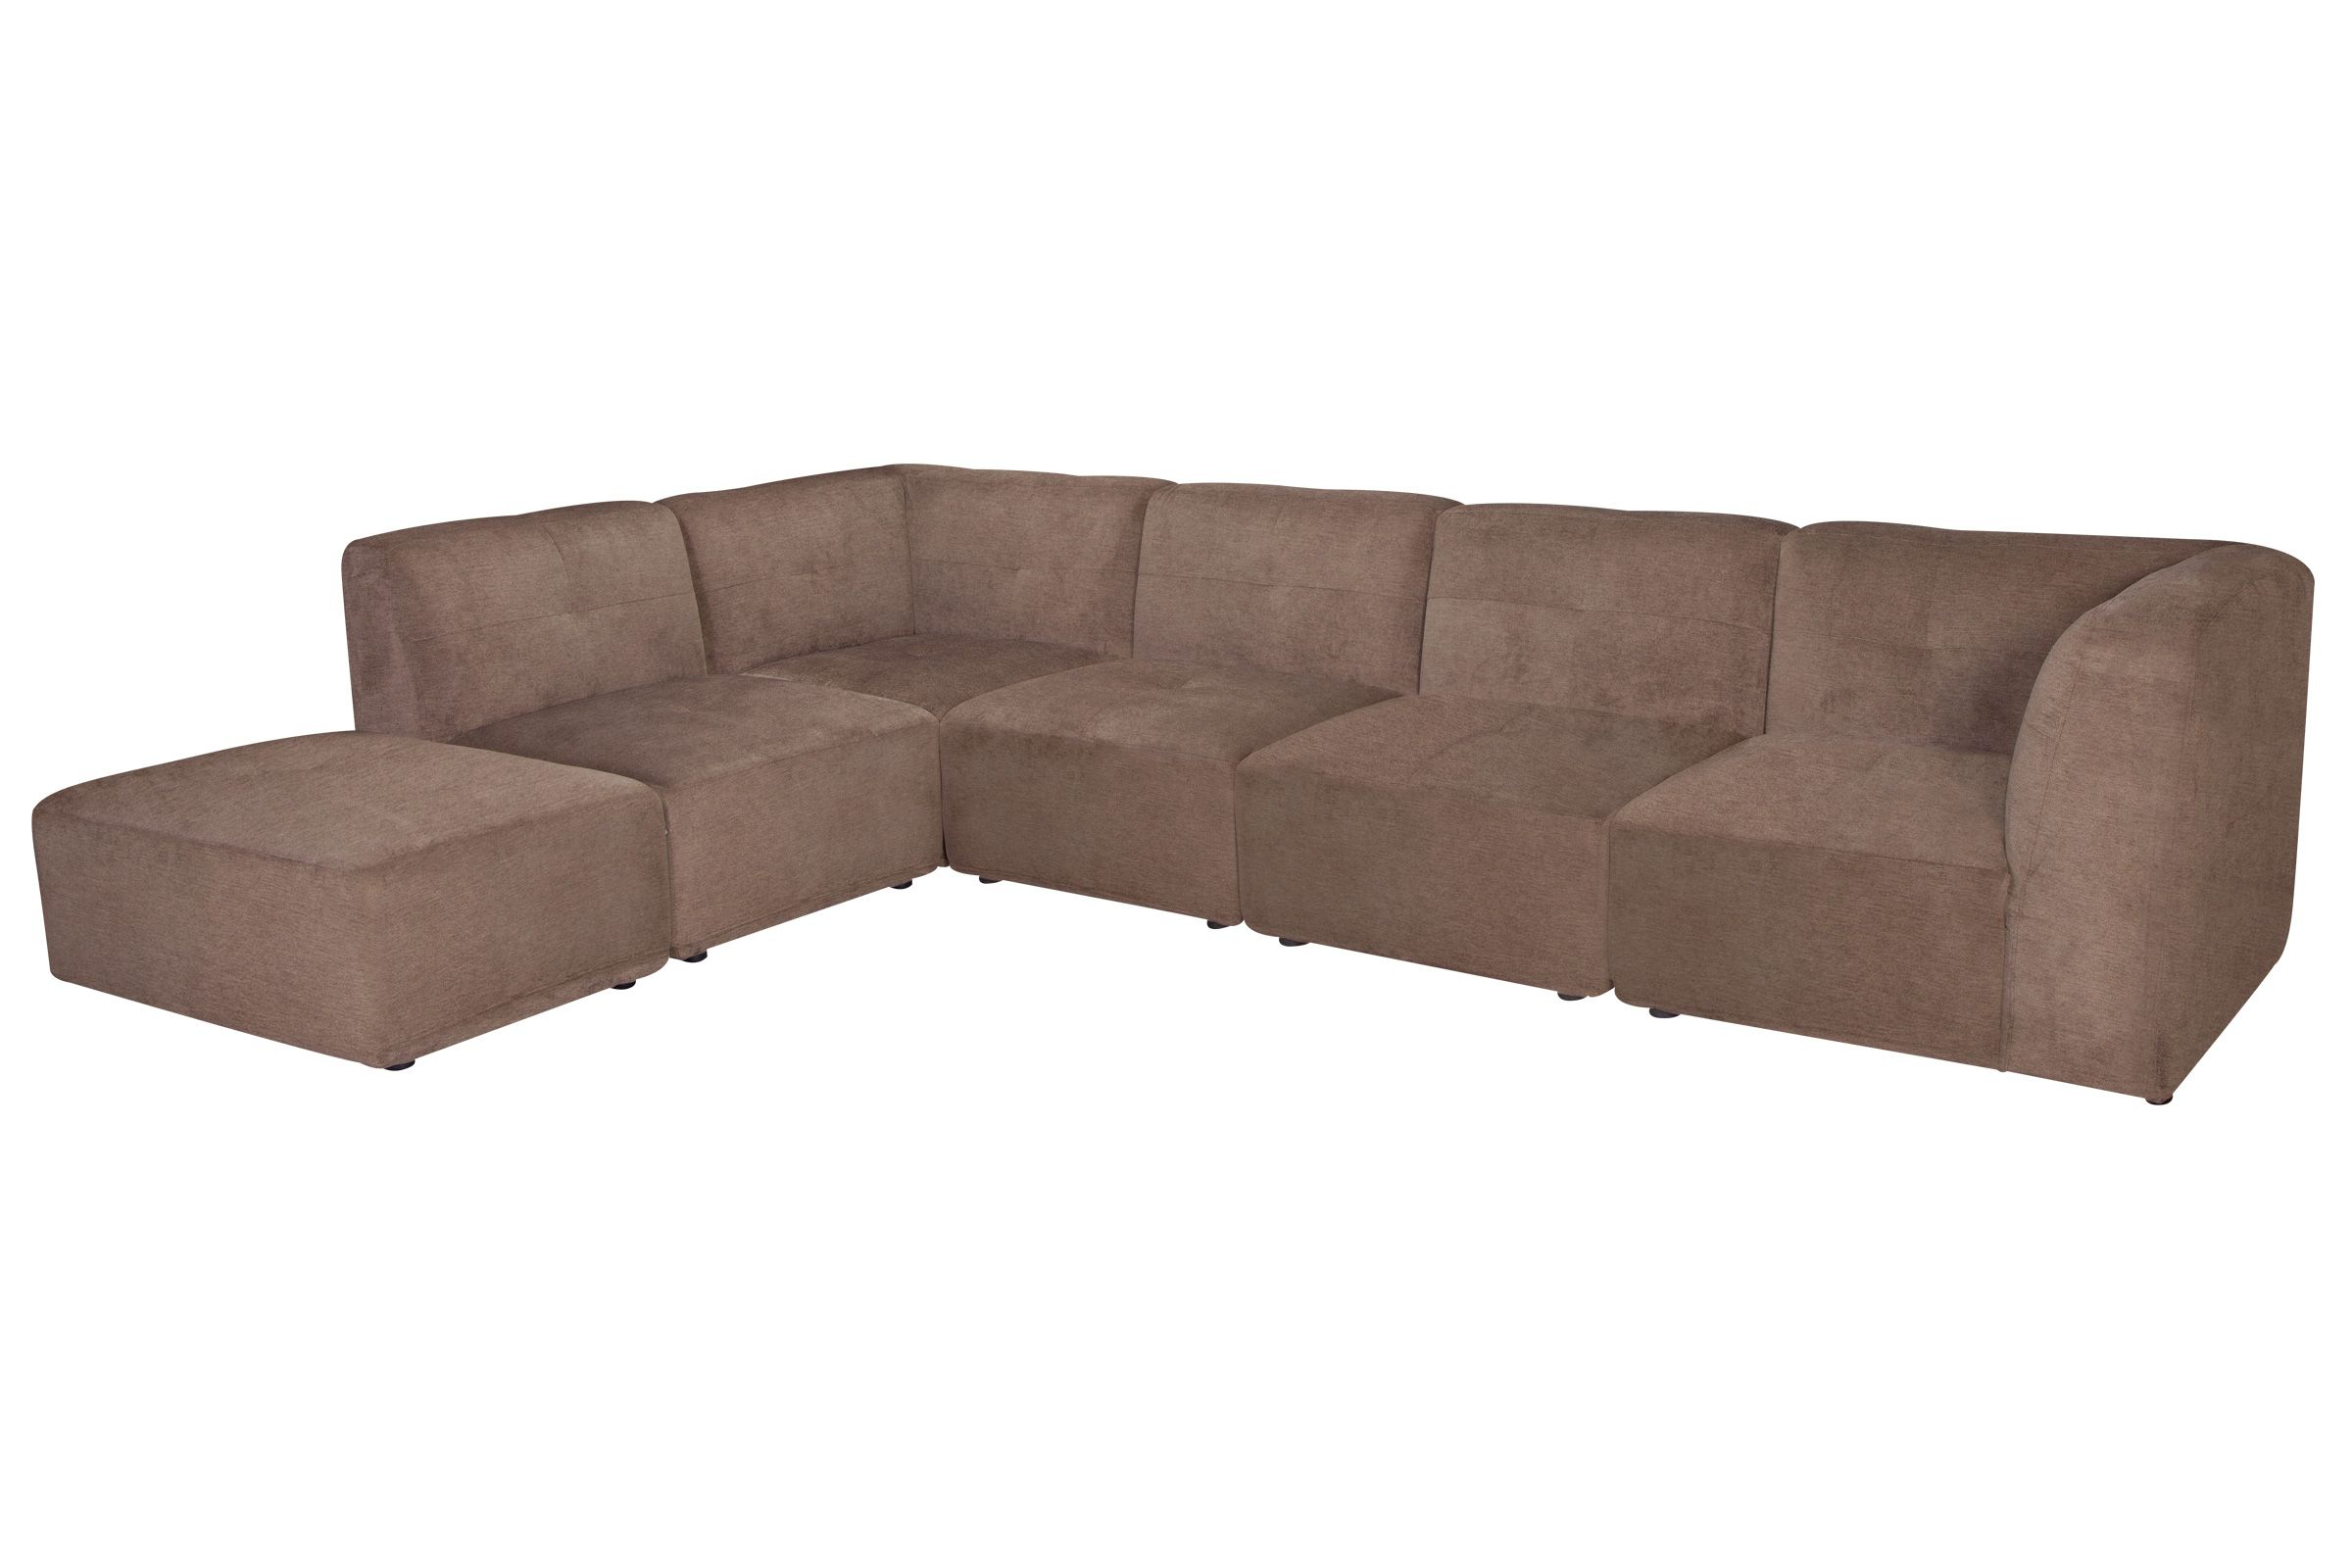 Hillsdale 6 Piece Microfiber Sectional with Ottoman